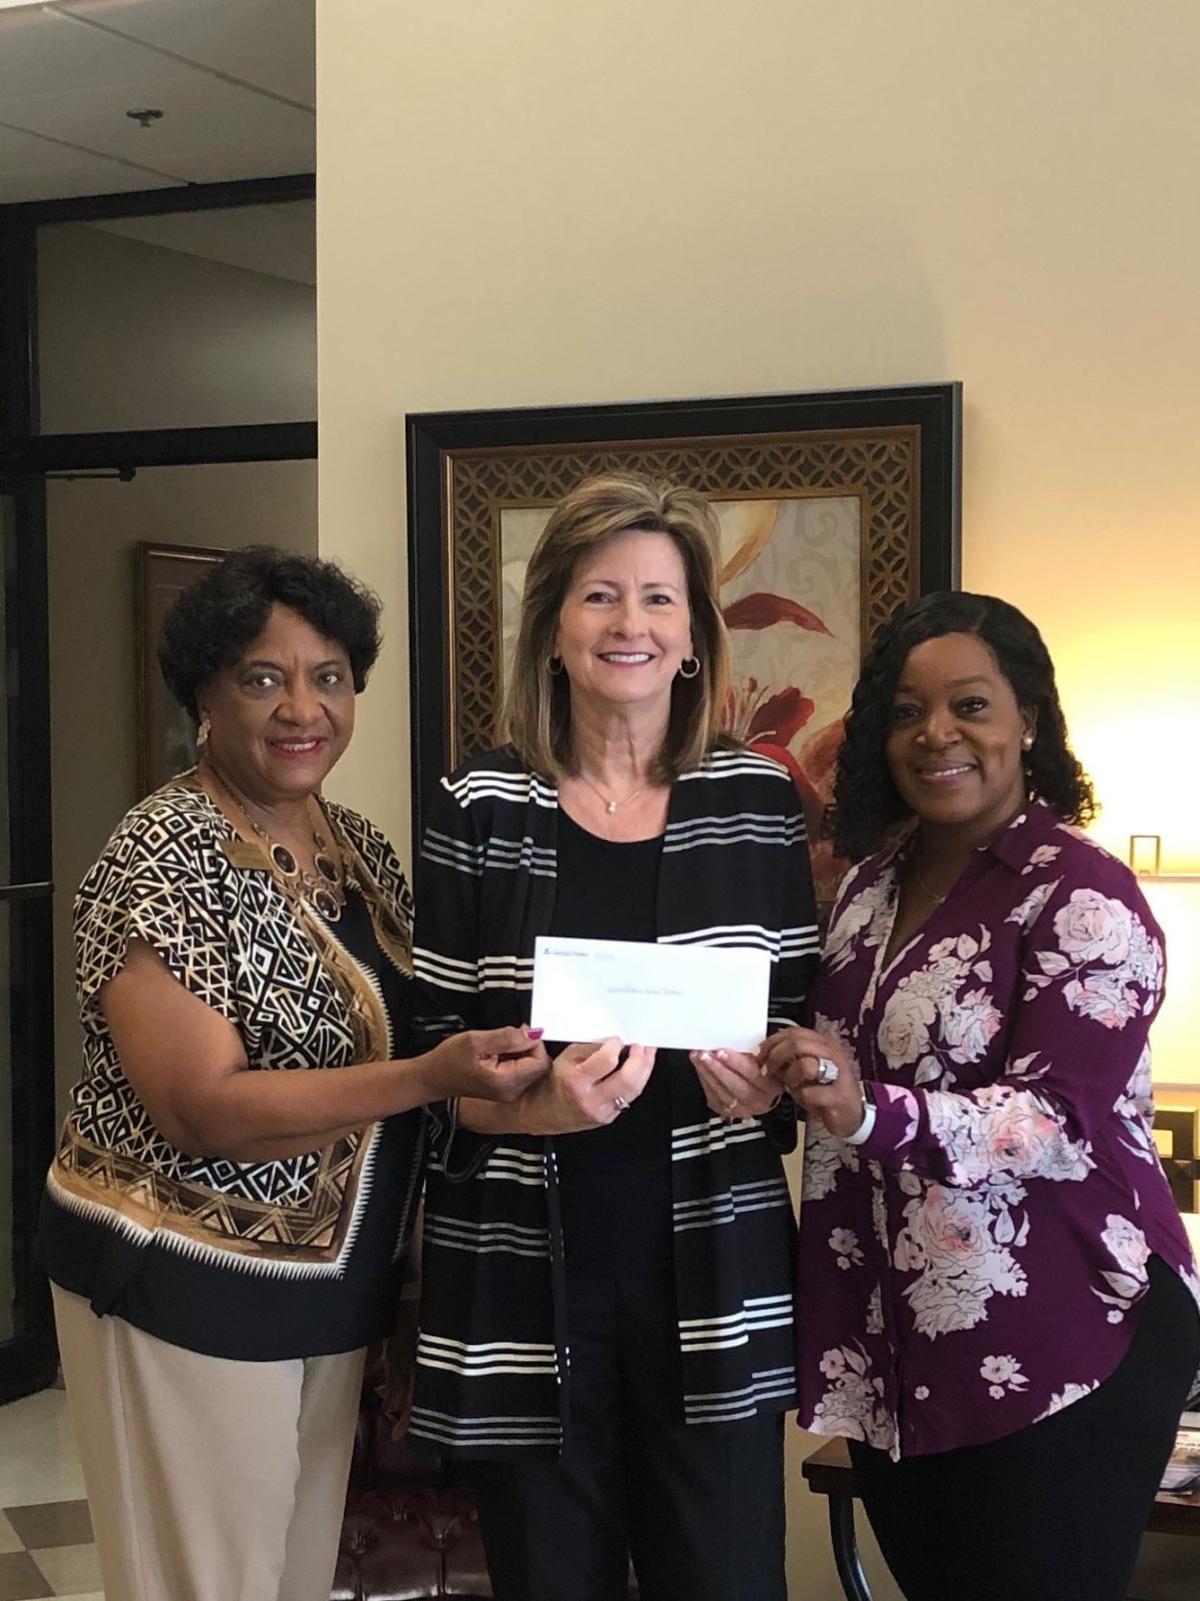 Georgia Power area manager Lynn Lovett presents a donation to the Leroy Rogers Senior Center staff. Left to right: Fran Kinchen (executive director), Lynn Lovett of Georgia Power, and Natasha Patrick (nutrition coordinator).